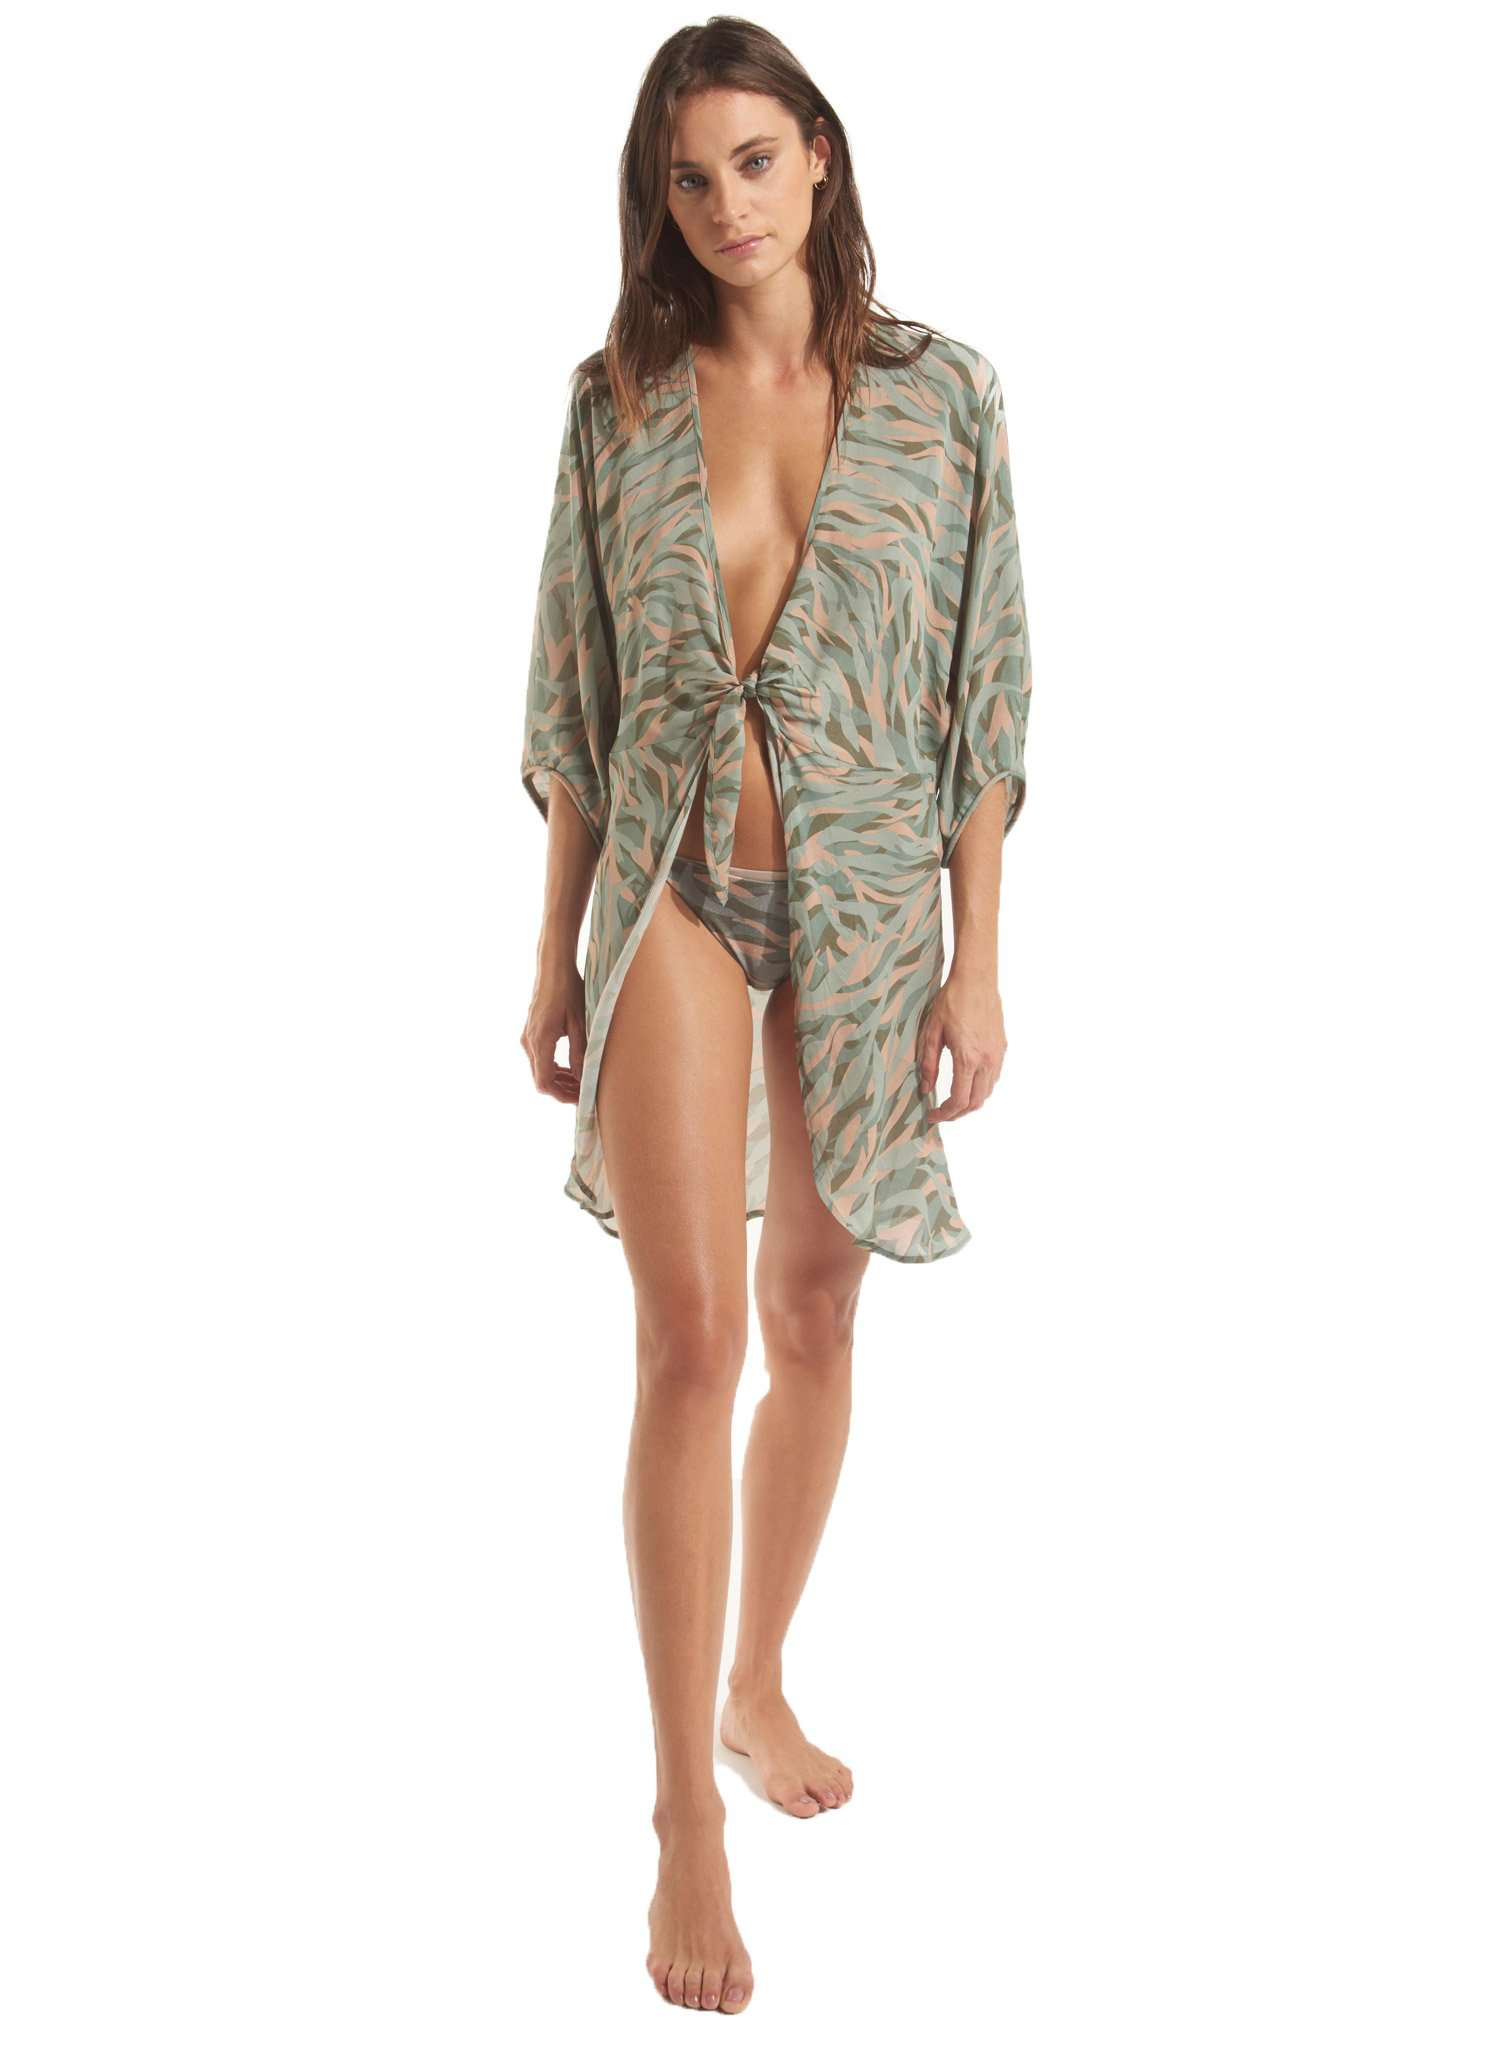 LUCI COVER UP - SOFT CAMOUFLAGE